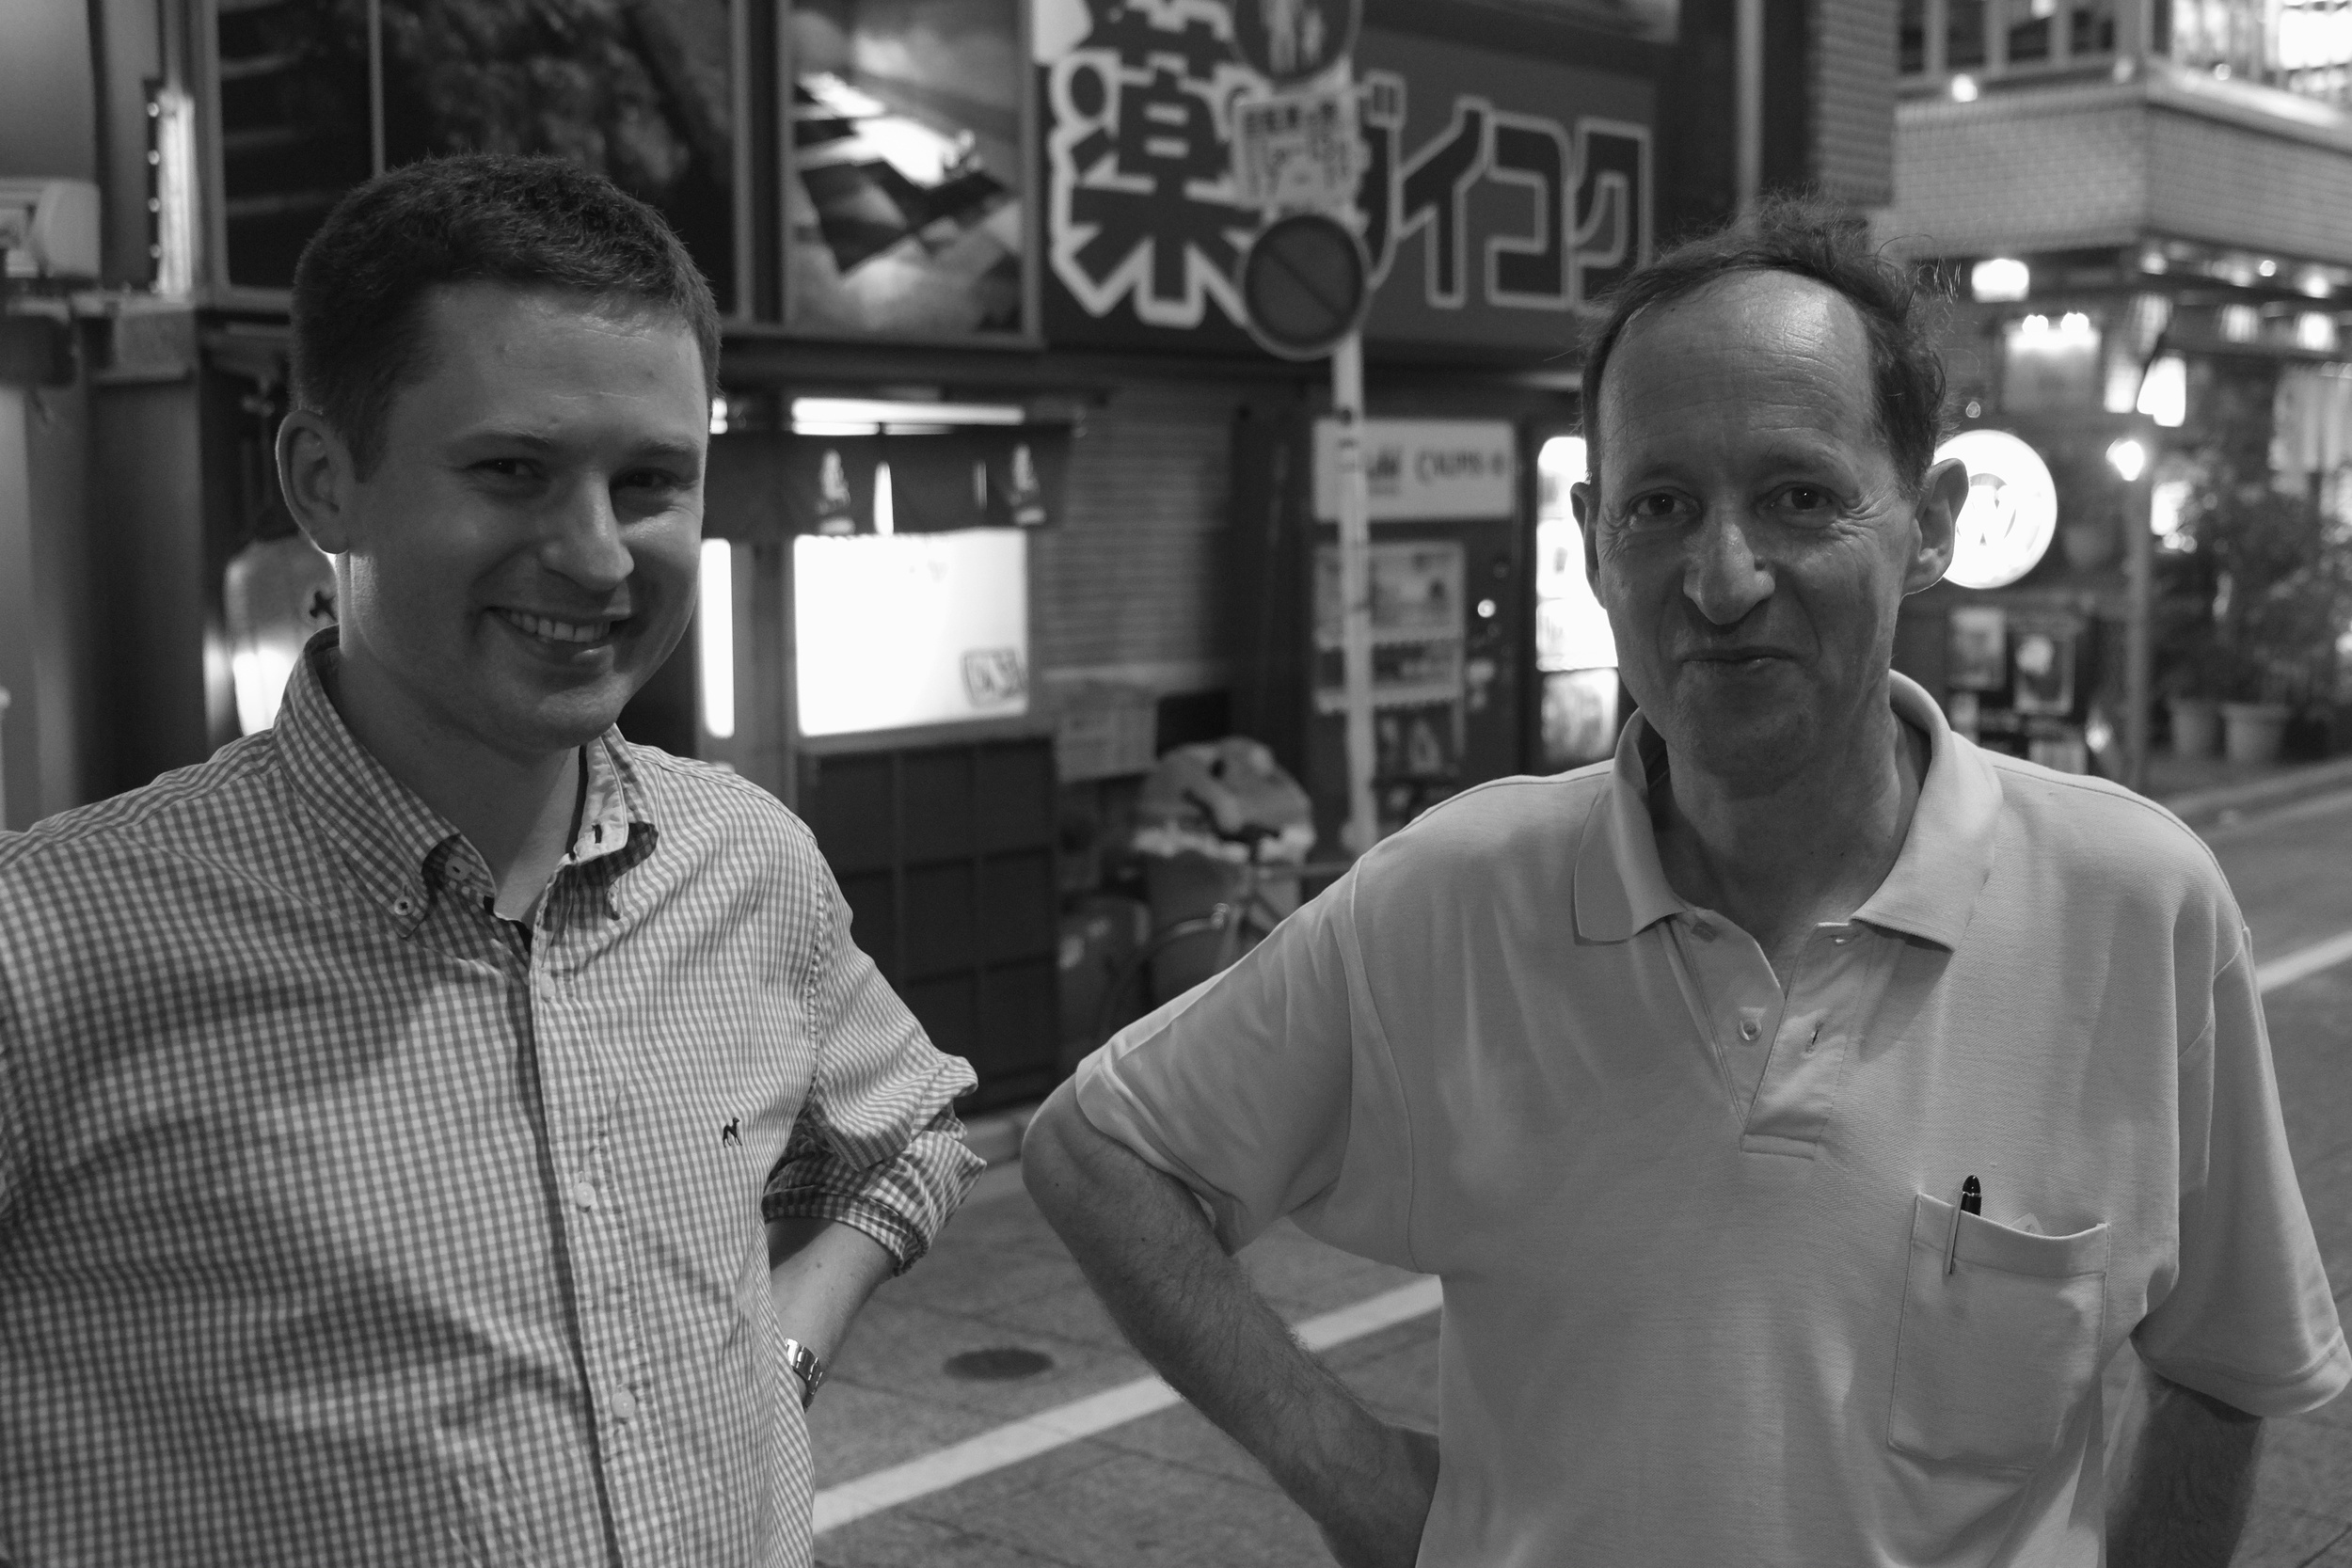 lukasz and rabah,toyko, august, 2014